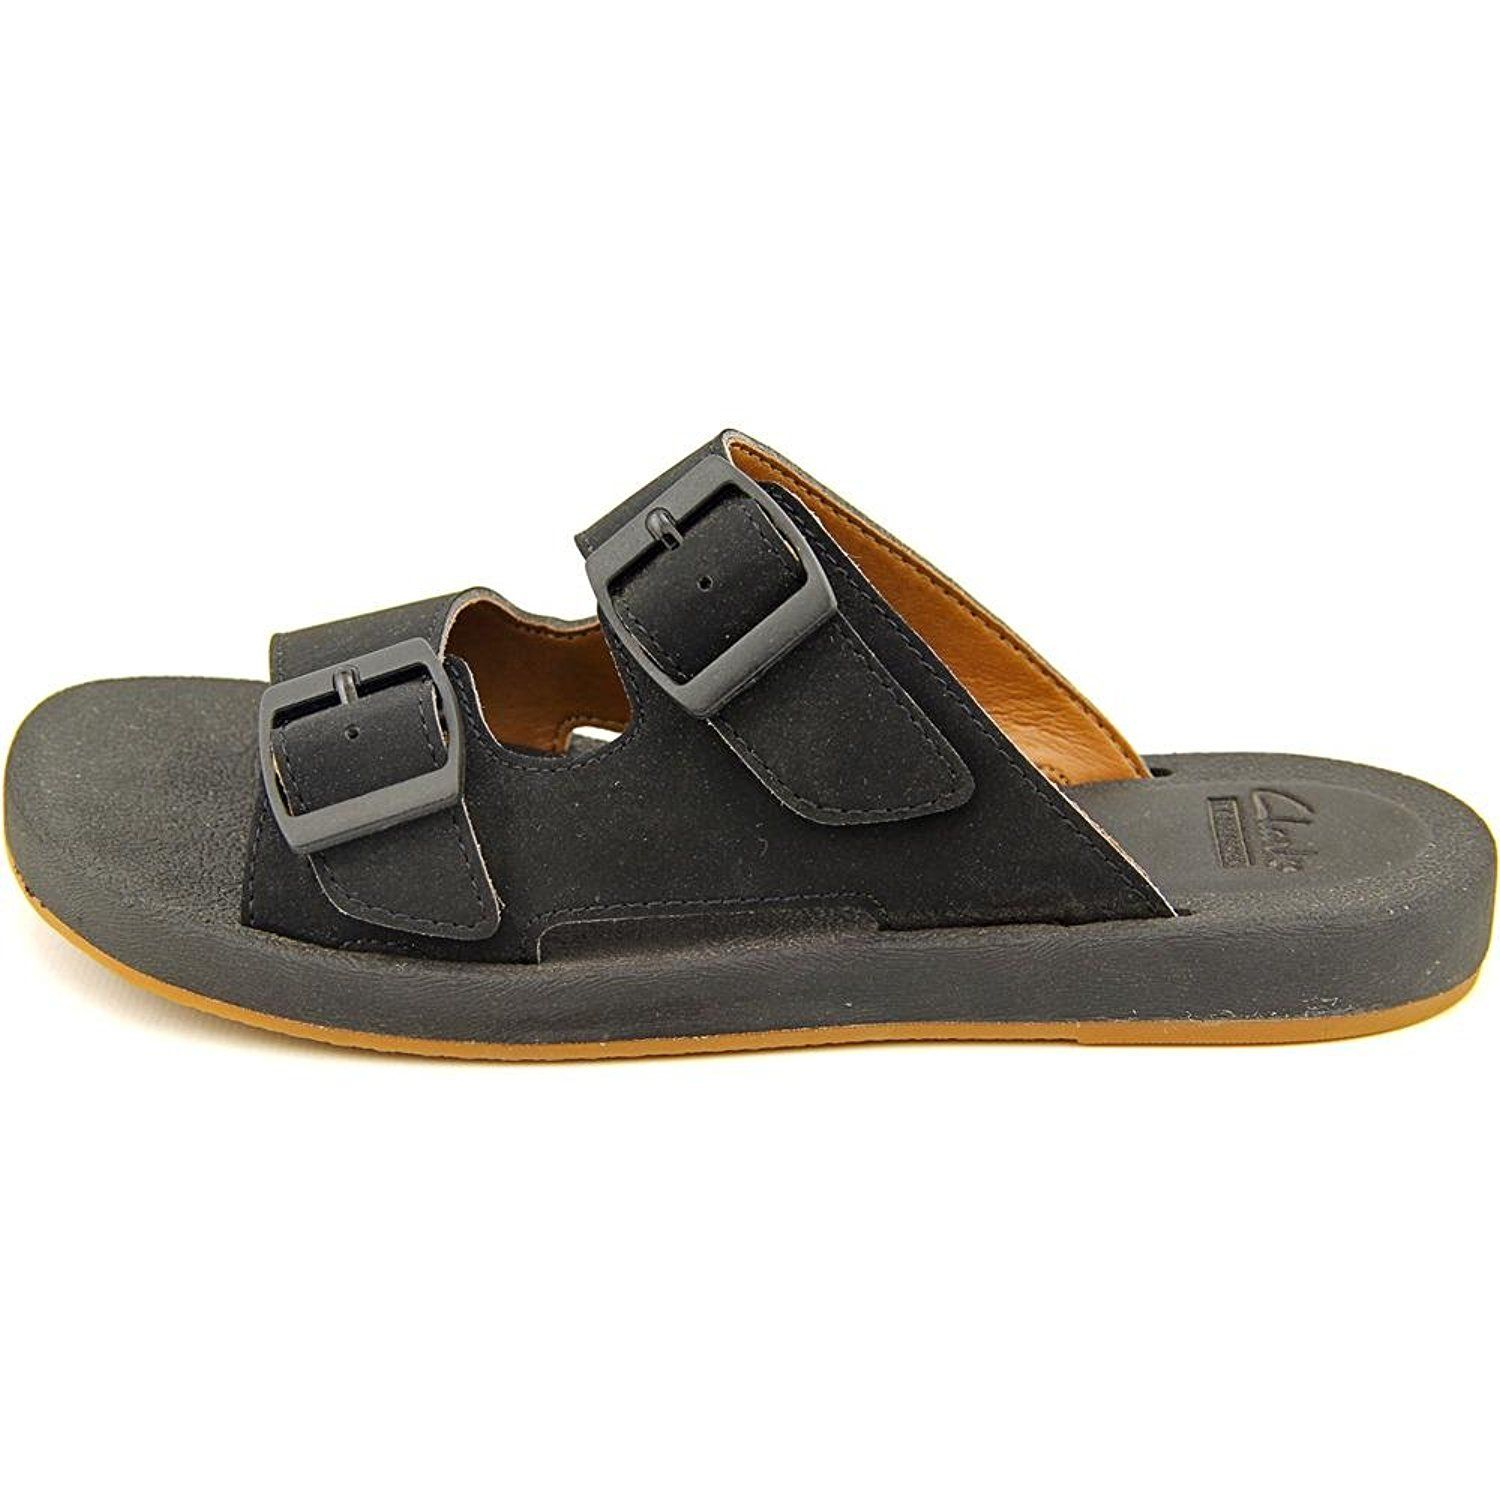 Womens Sandals Clarks Paylor Pax Black Synthetic